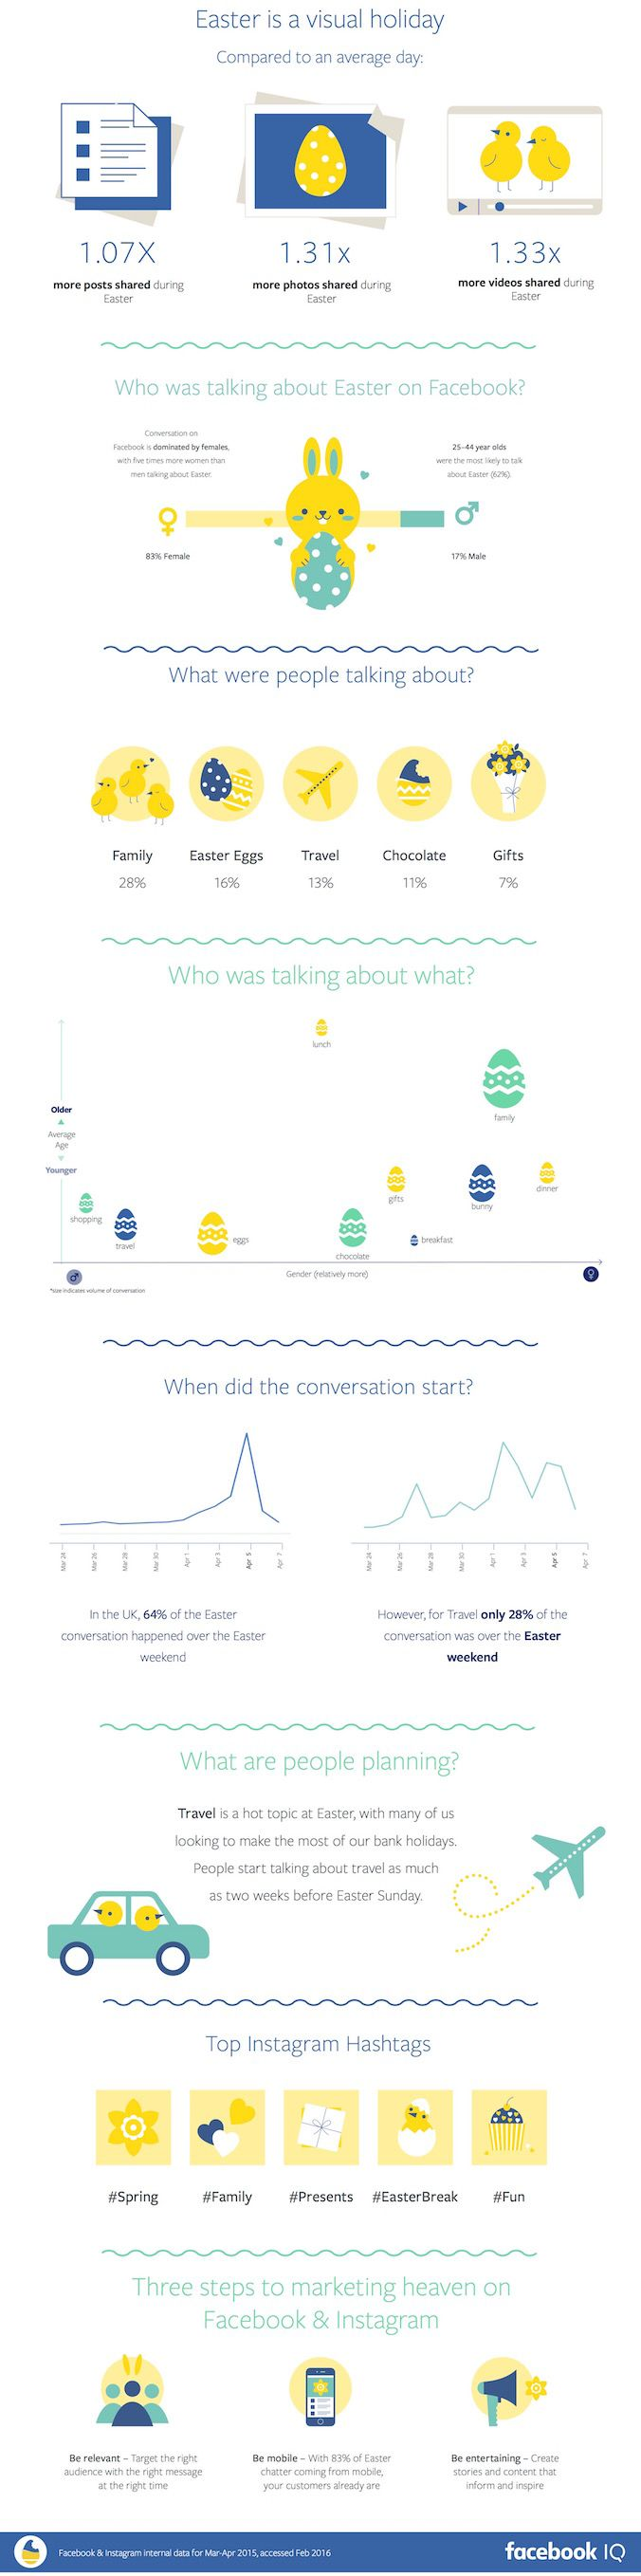 Easter is a visual holiday... #facebook #marketing #socialmedia #marketingstrategy #infographic #southcoastsocial #easter #eggs